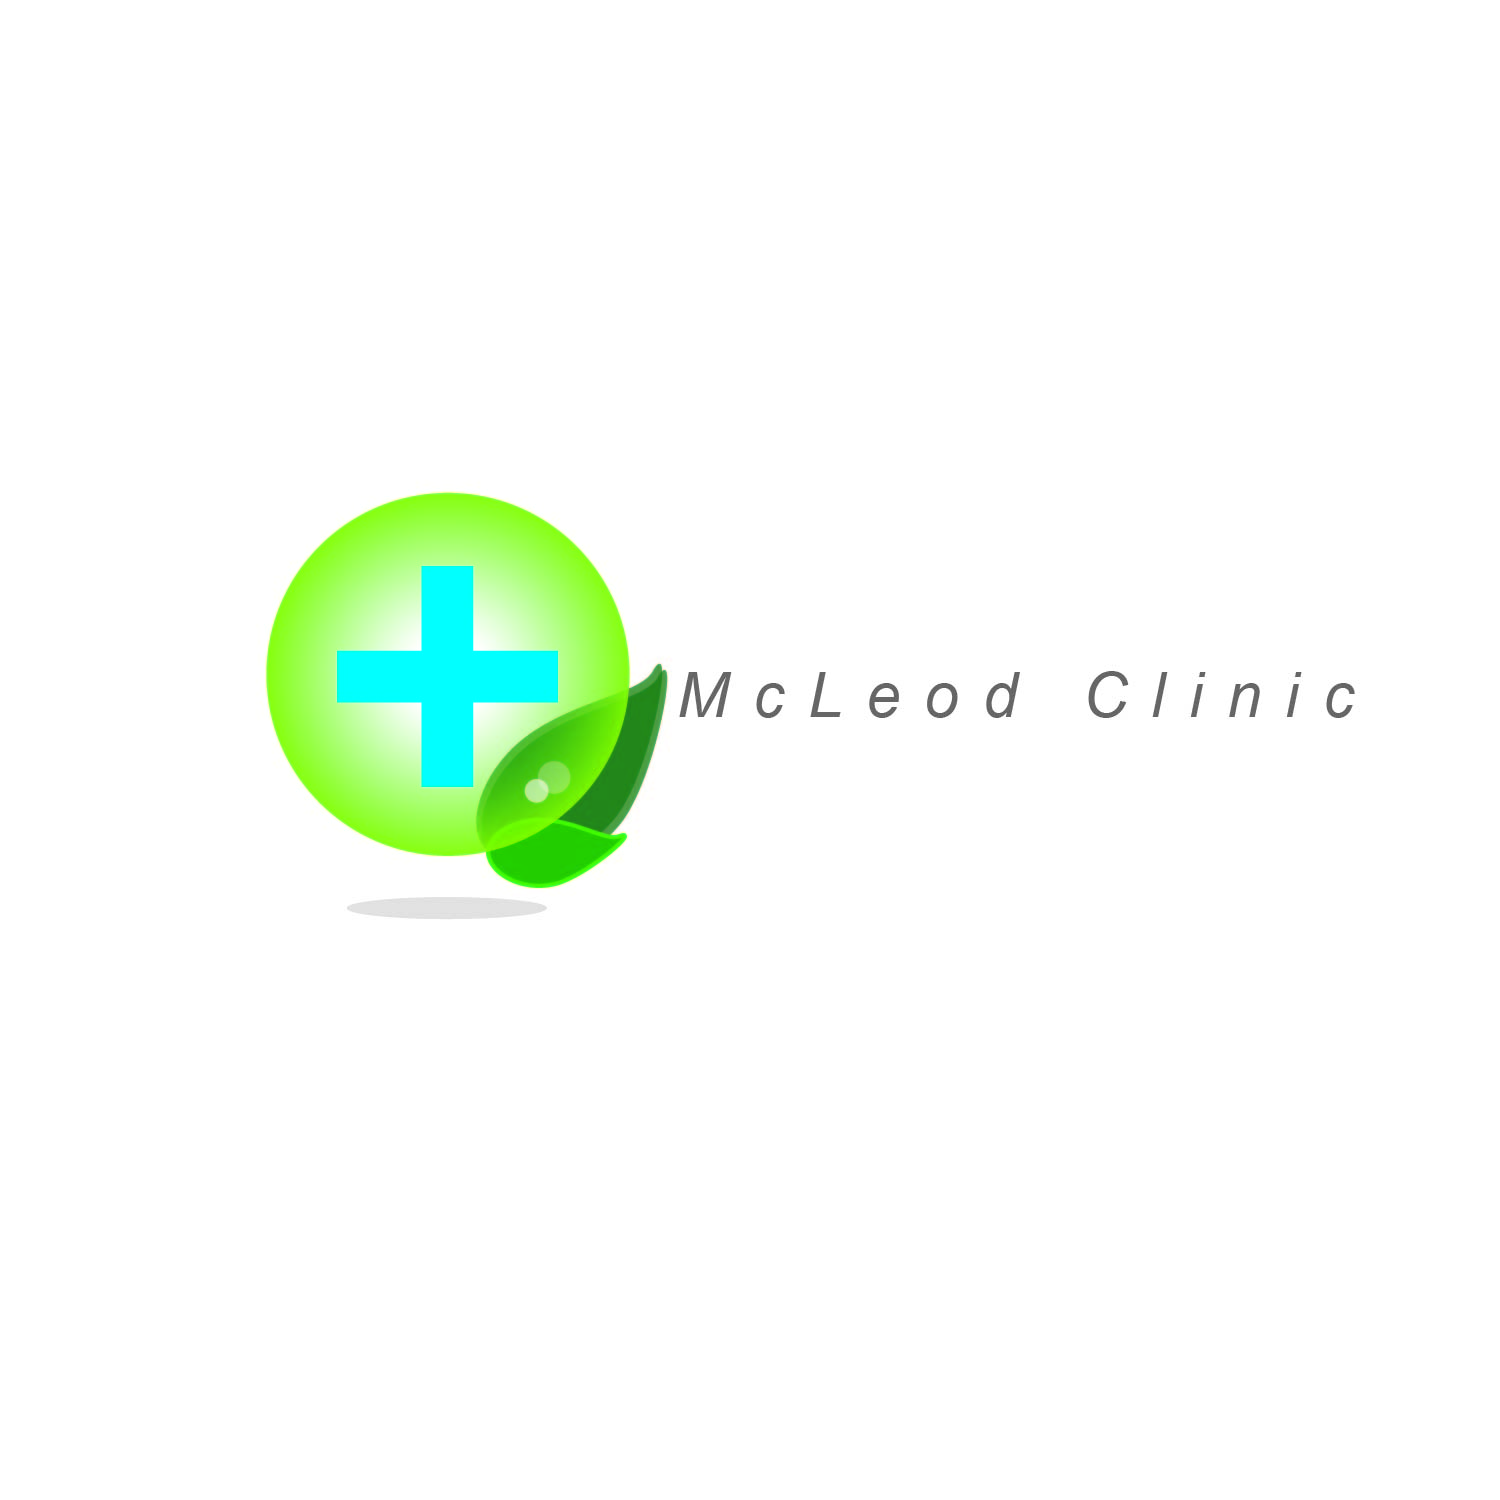 Logo Design by Ronel Billona - Entry No. 44 in the Logo Design Contest Creative Logo Design for McLeod Clinic.